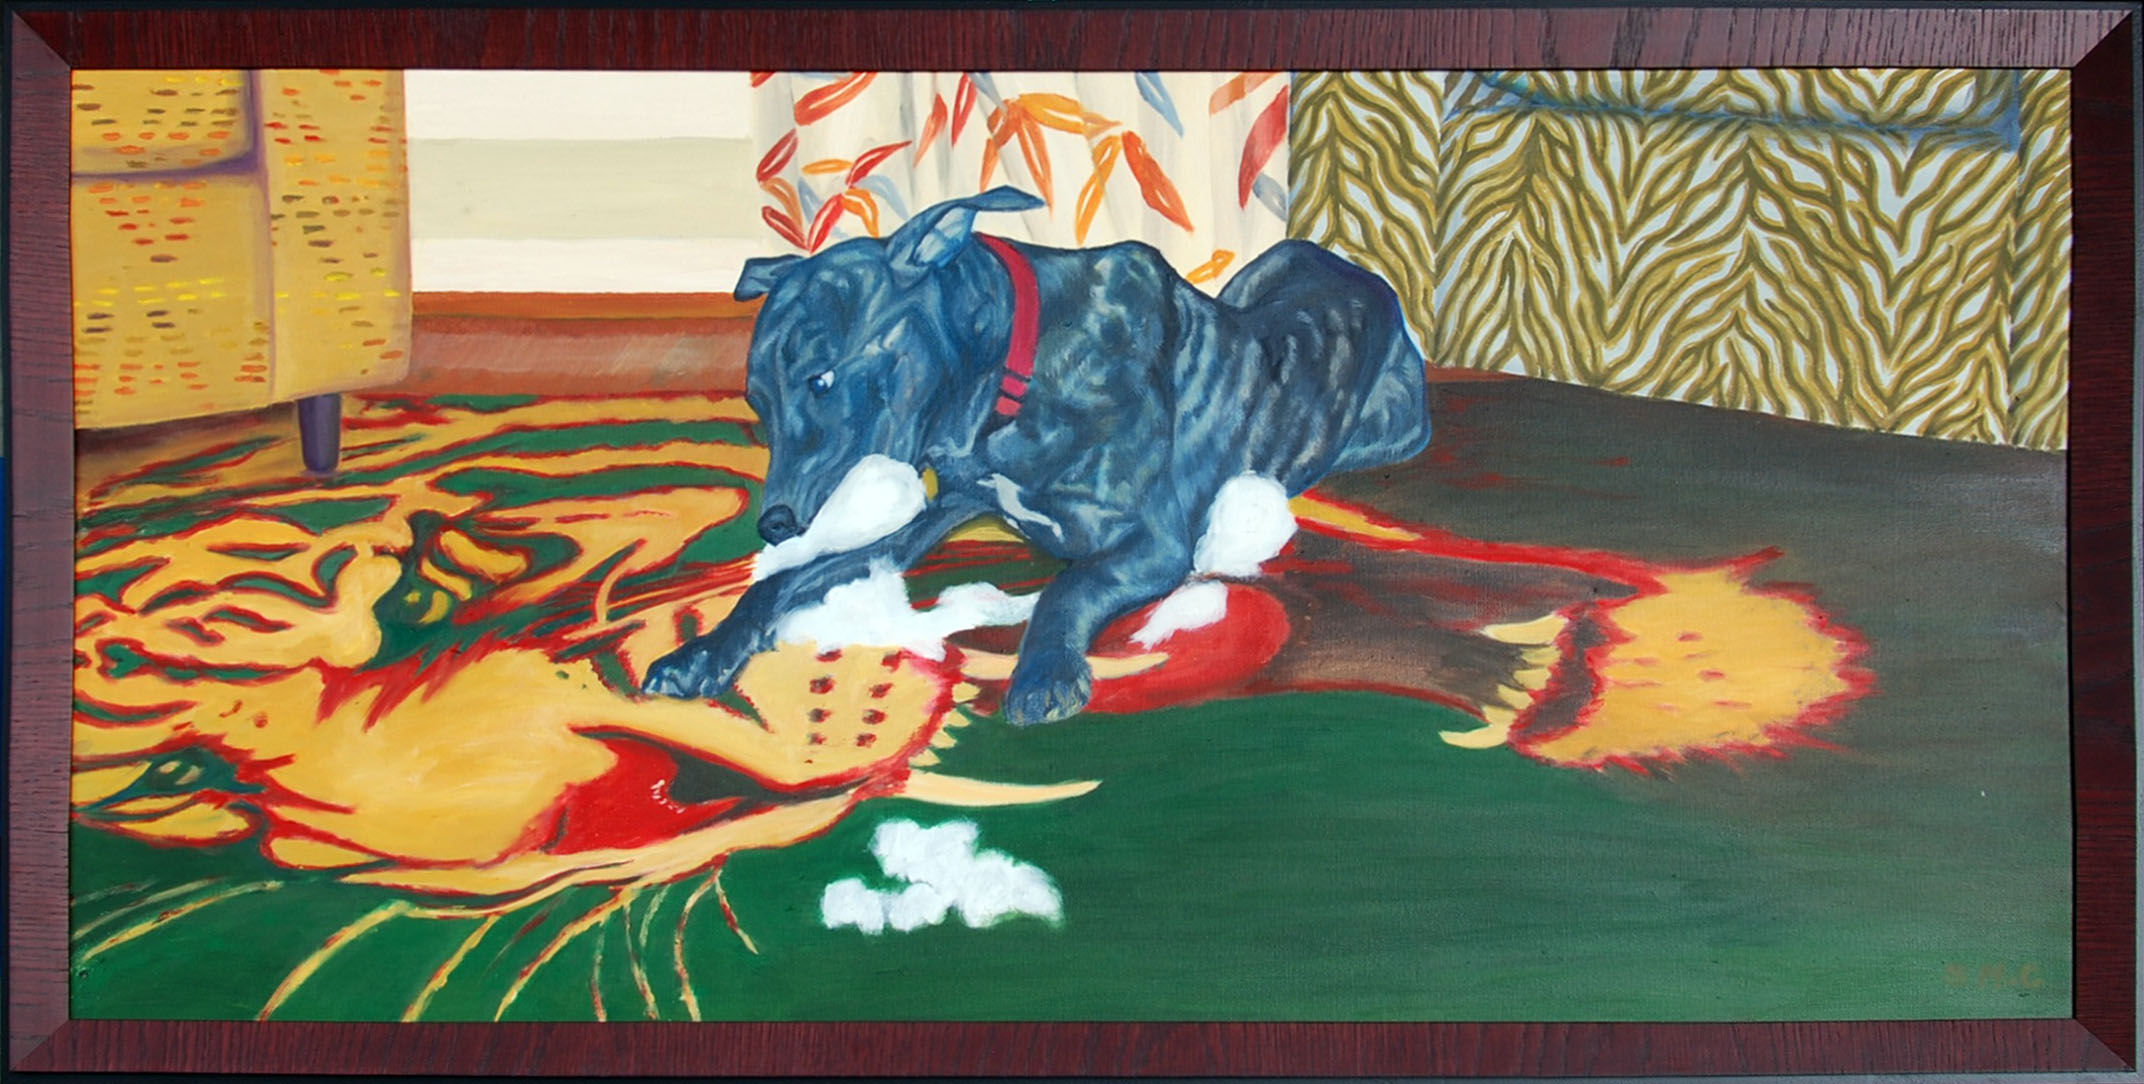 "Dog vs. Tiger  oil on canvass; 20""x40""; 2013  As in a boxing ring, the tiger has his 'corner' with the chair of similar colors. The dog's chair has a similar brindle pattern. The surroundings are in full color while the dog is mainly black and white or gray hues."